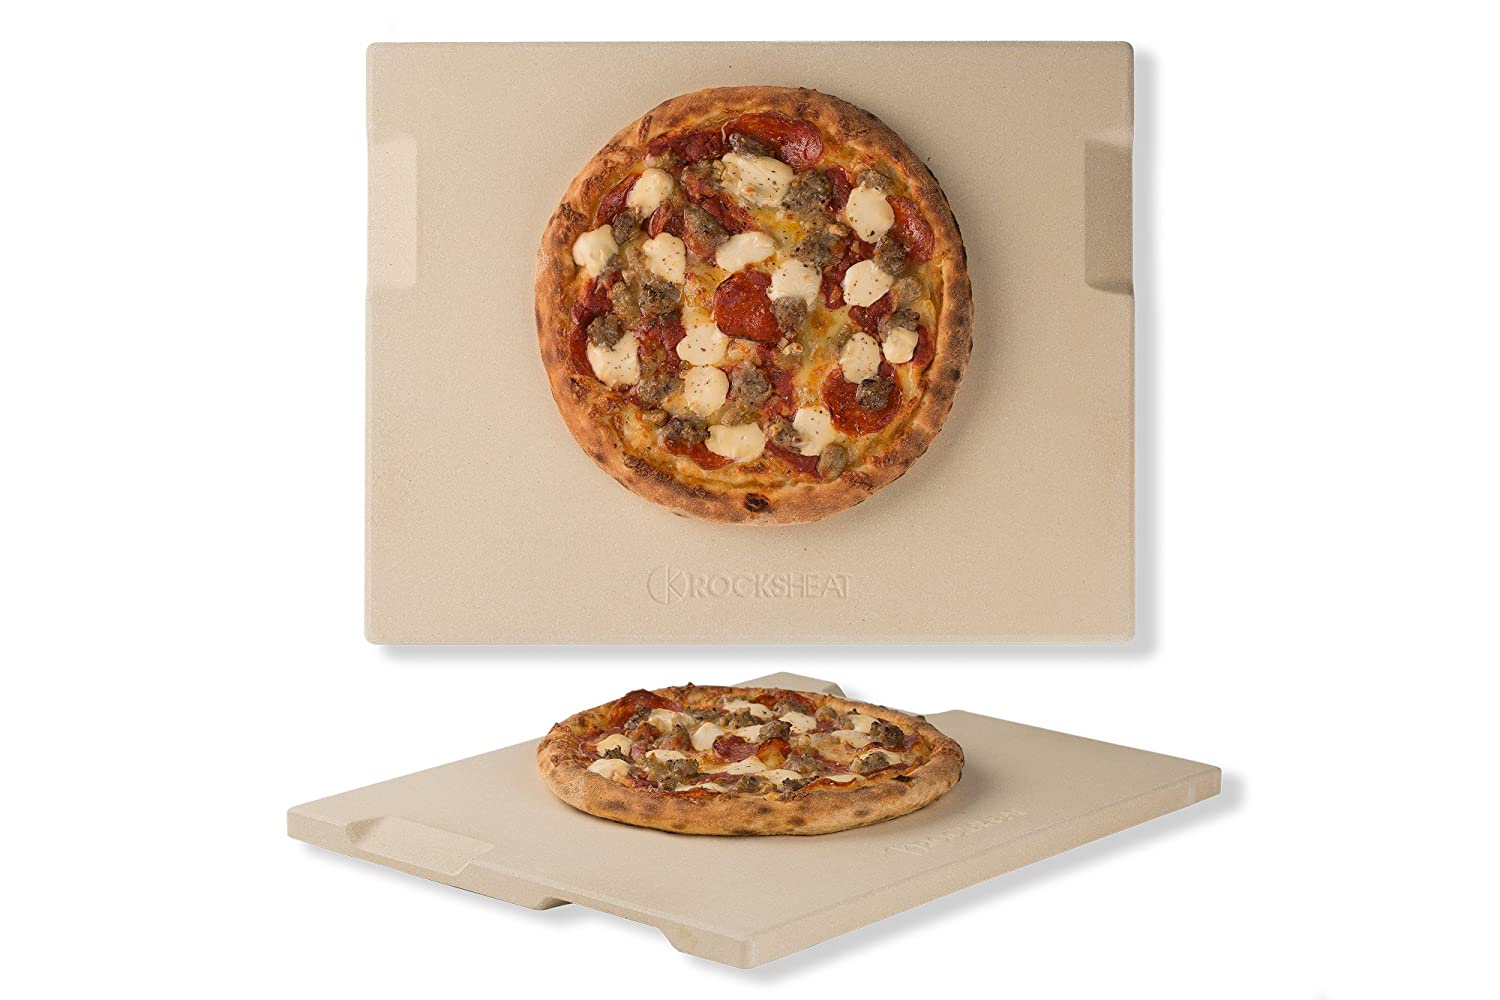 "Pizza Stone 12"" x 15"" Rectangular Baking & Grilling Stone, Perfect for Oven, BBQ and Grill. Innovative Double - faced Built - in 4 Handles Design"